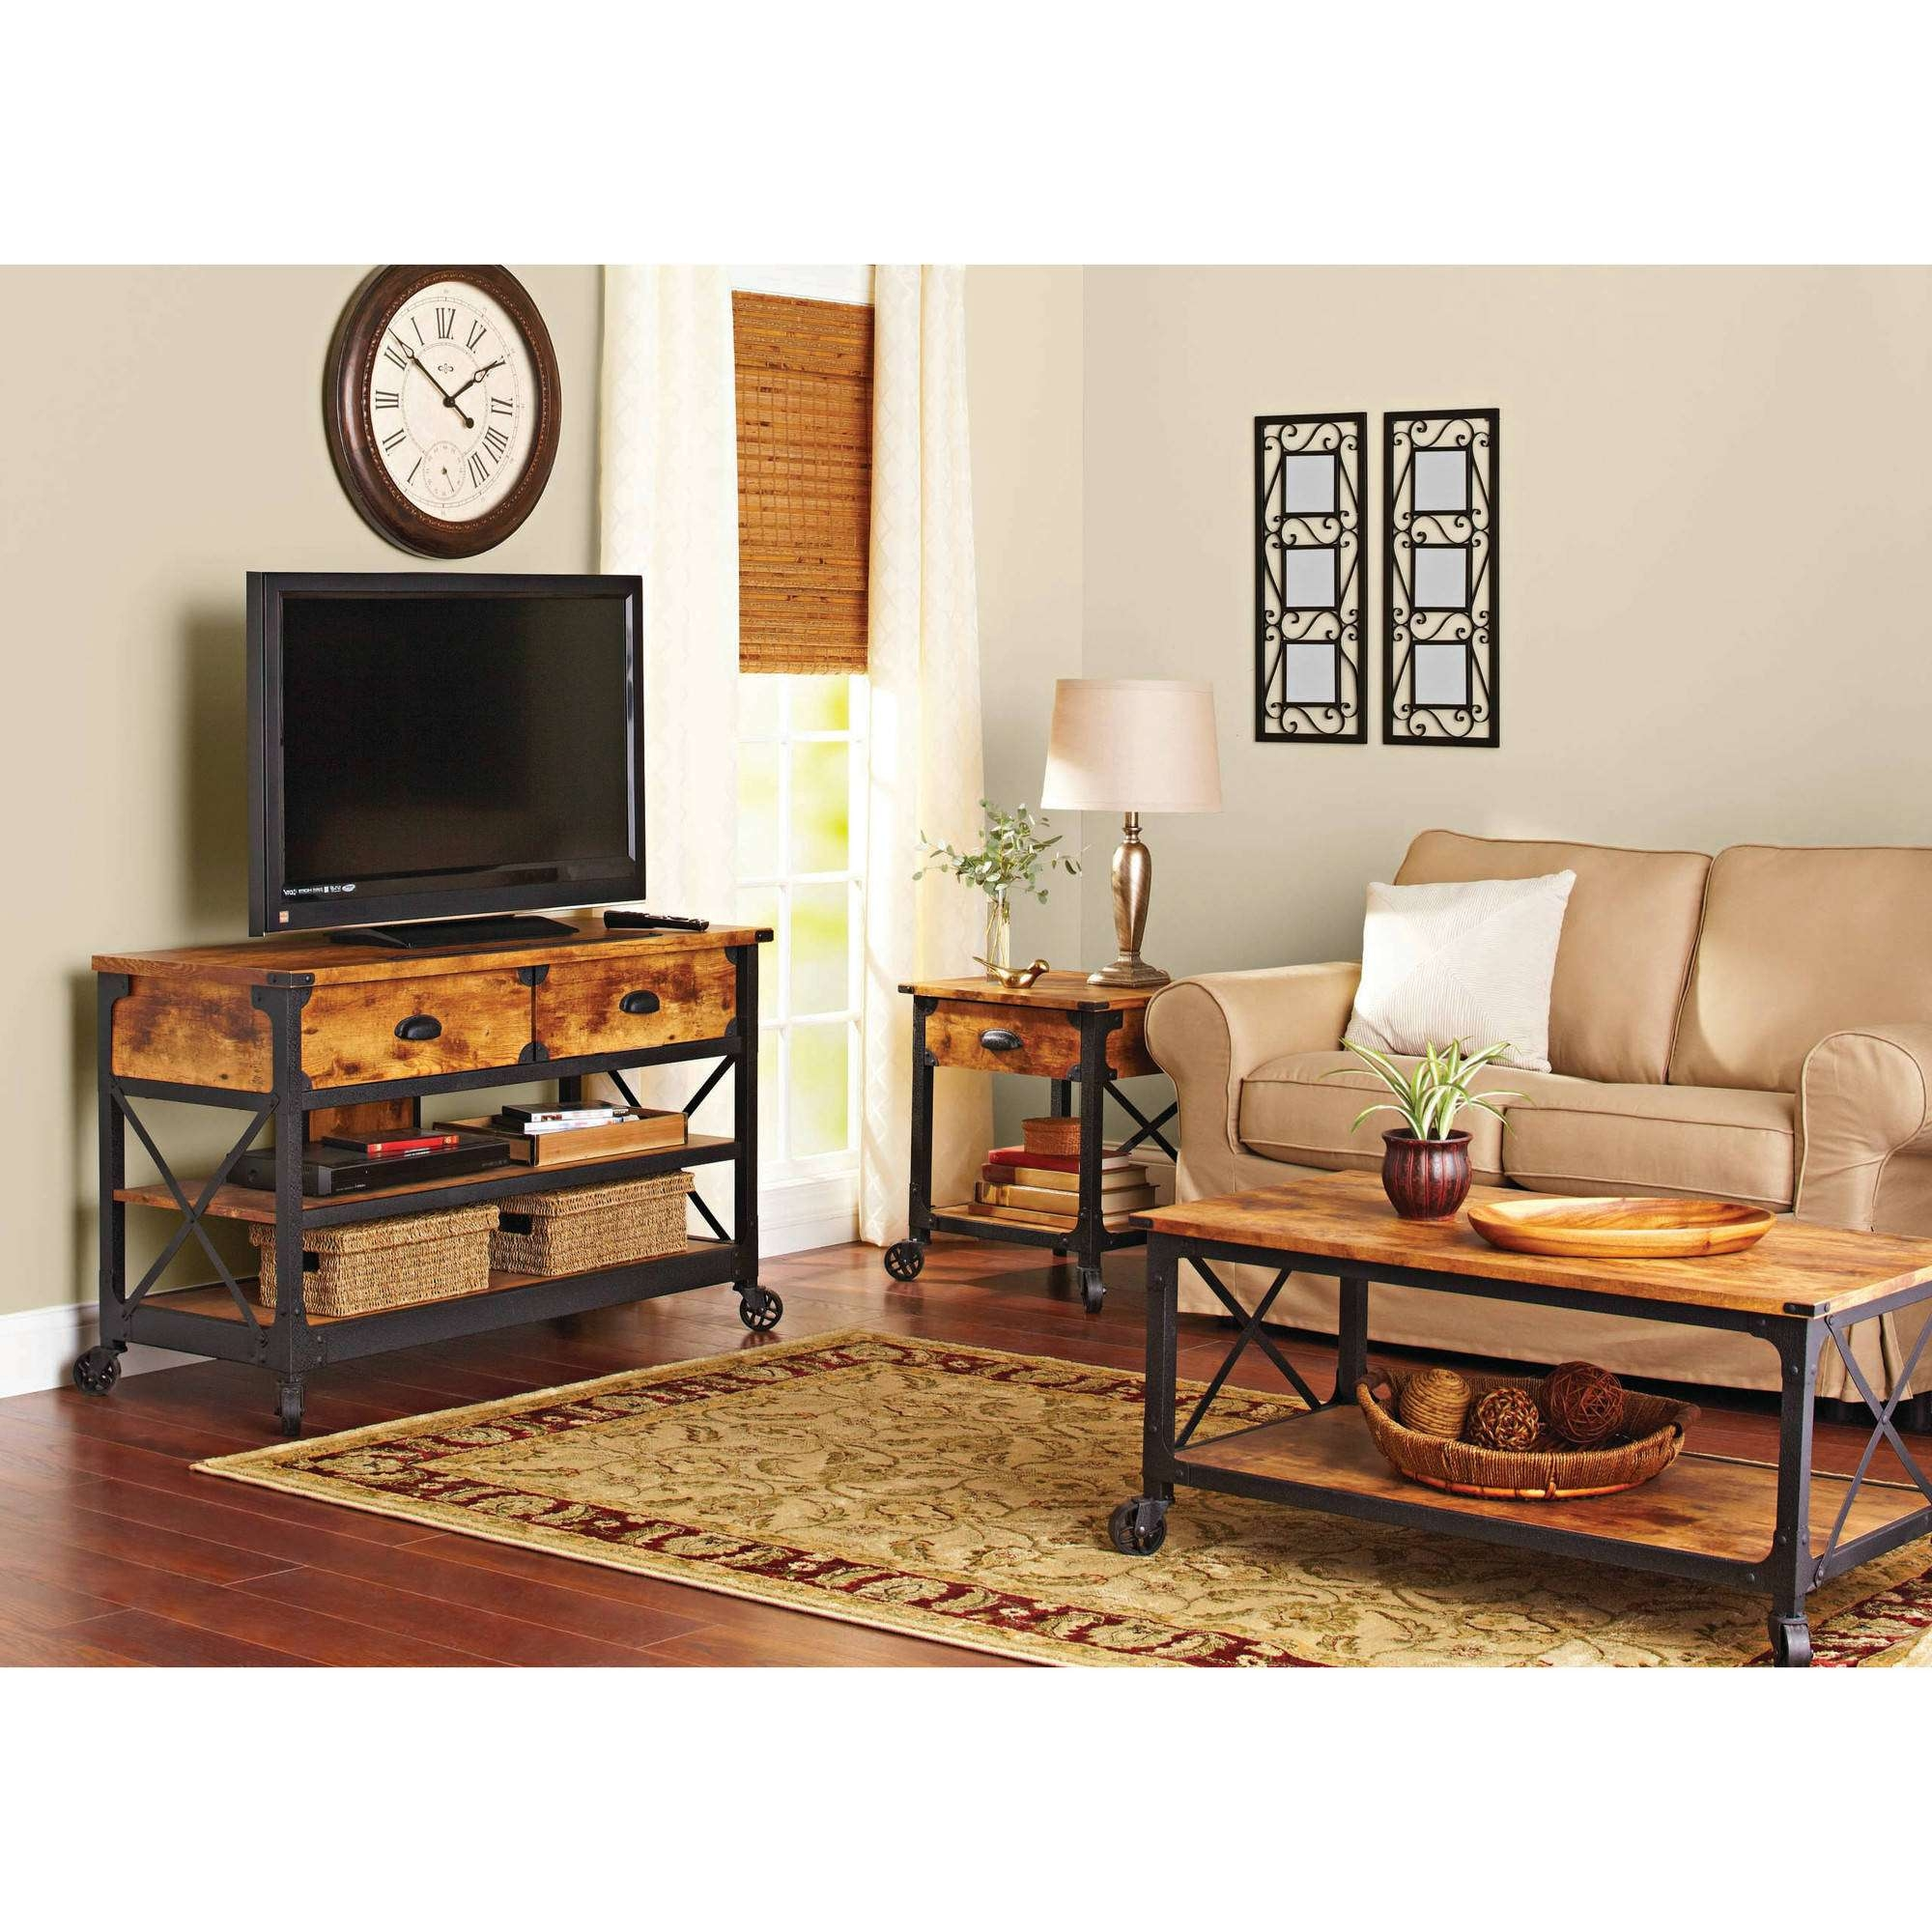 Table : Amazing Rustic Coffee Table And Tv Stands Better Homes And Intended For Coffee Tables And Tv Stands (View 9 of 20)